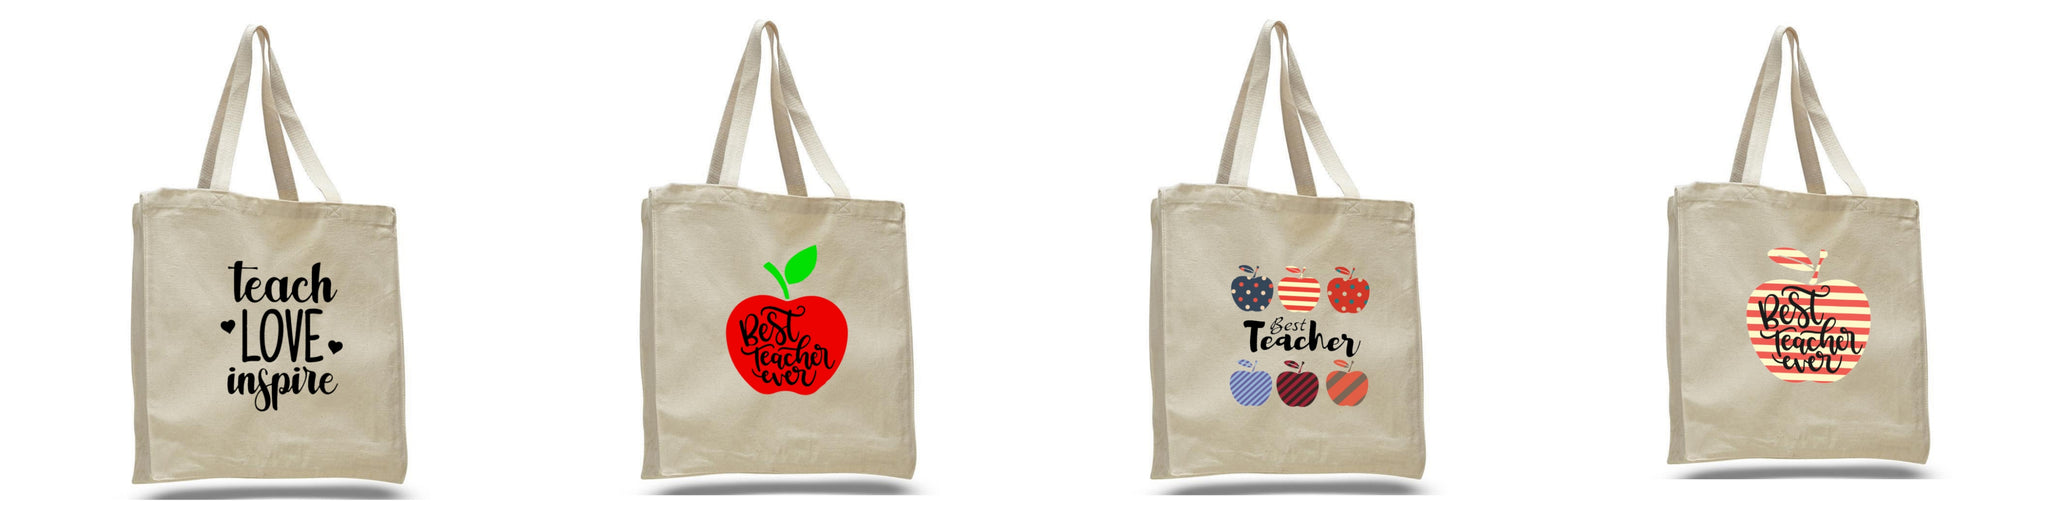 Wholesale custom personalized canvas cotton tote bags in bulk